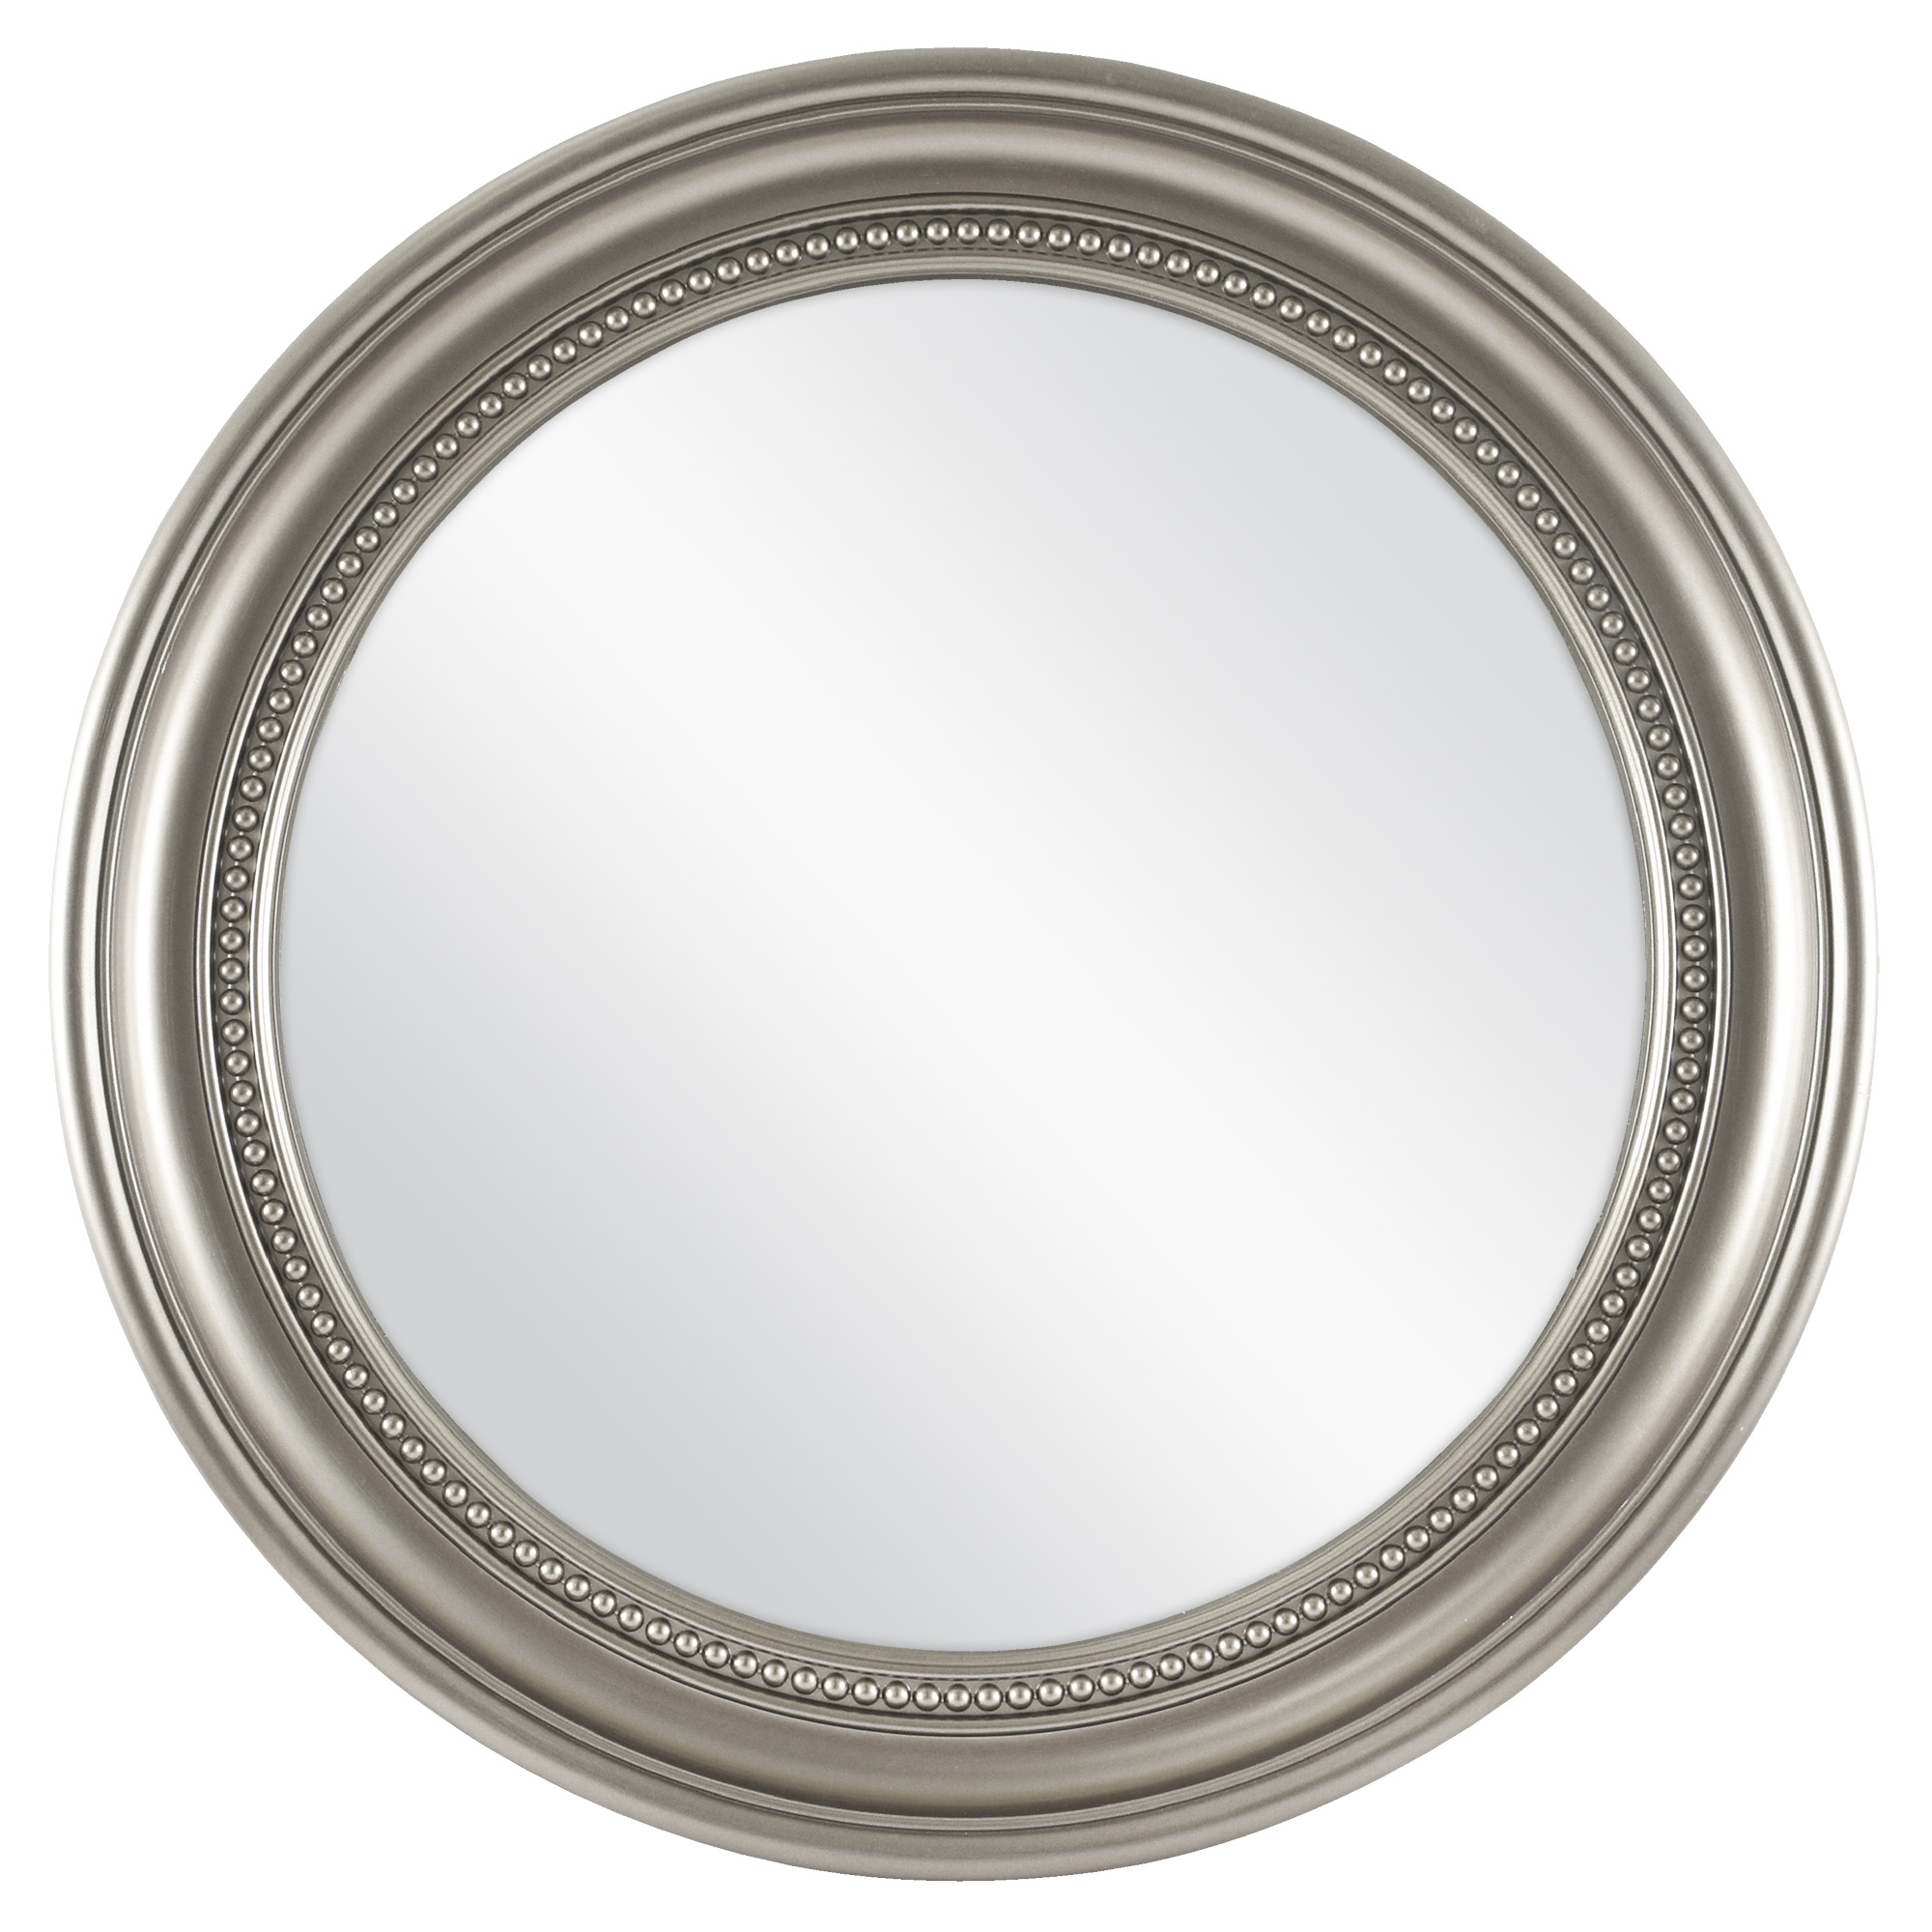 "Mainstays 18"" Silver Beaded Round Mirror by MCS Industries, Inc."